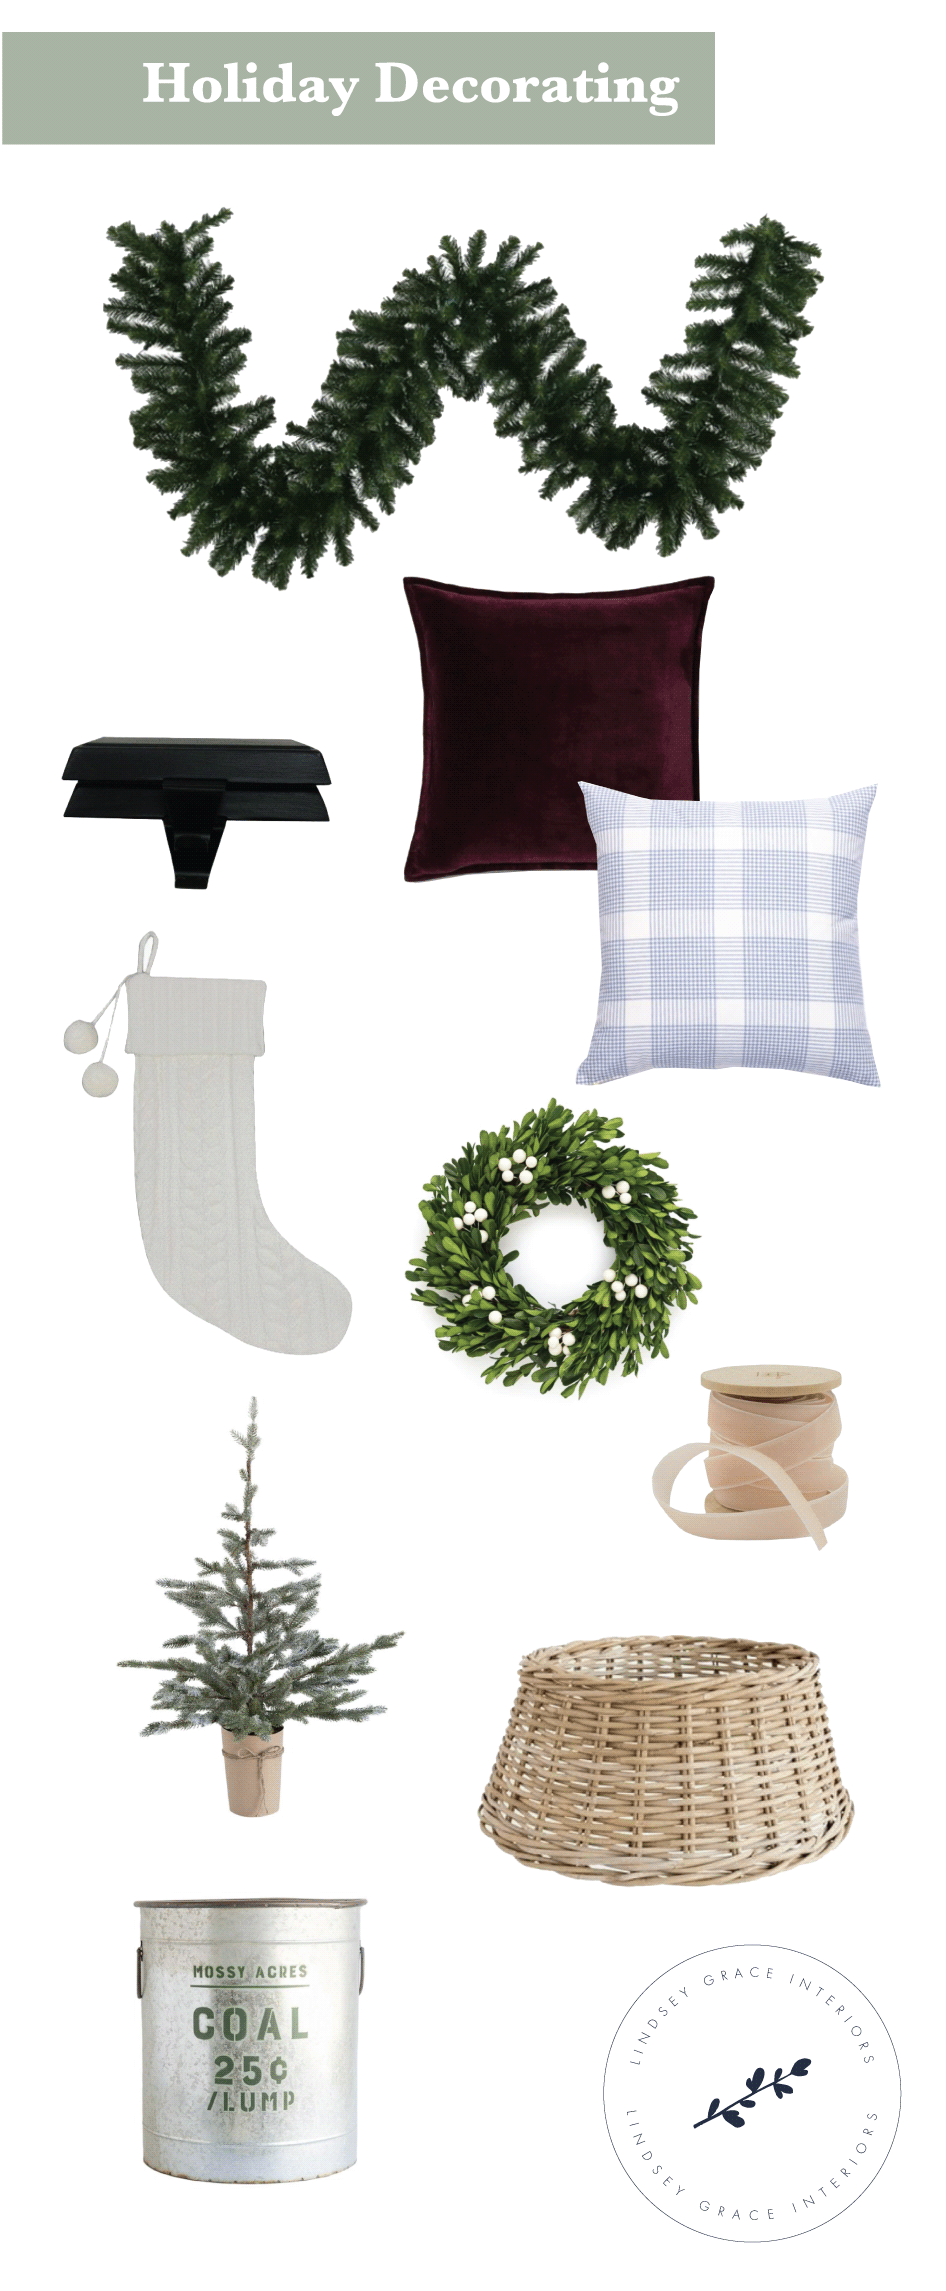 Lindsey Grace Interiors Holiday Decorating.png